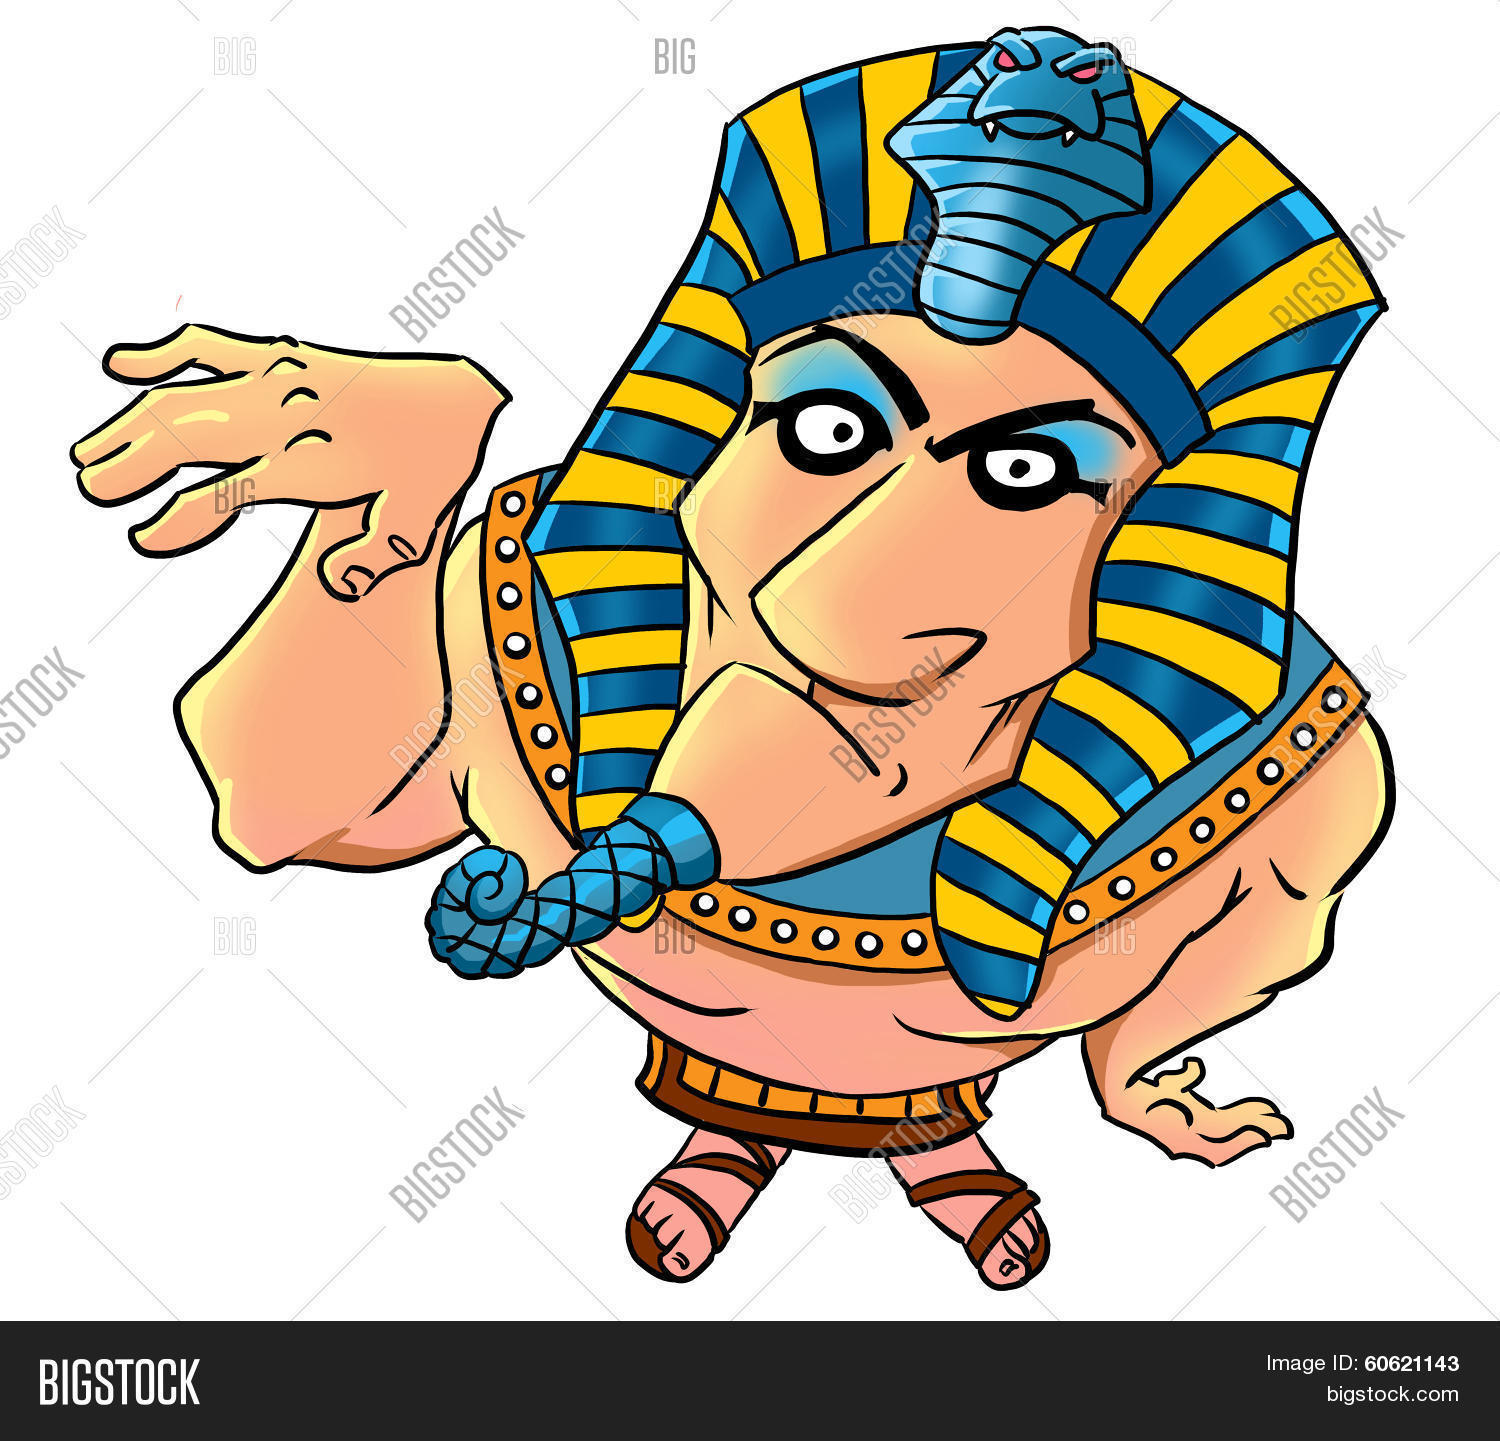 Funny Pictures About Egypt: Funny Cartoon Egyptian Pharaoh Image & Photo